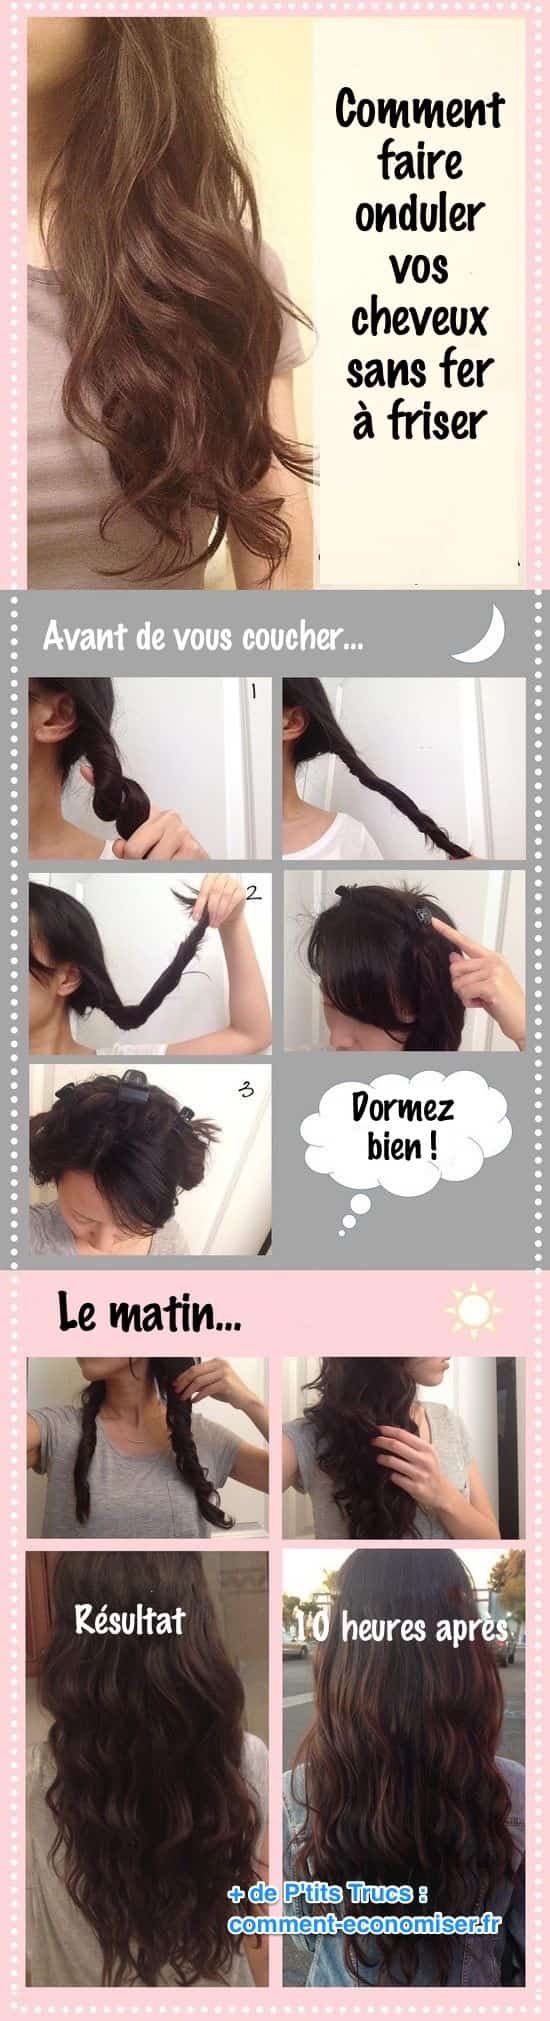 1000 Ideas About Onduler Ses Cheveux On Pinterest Comment